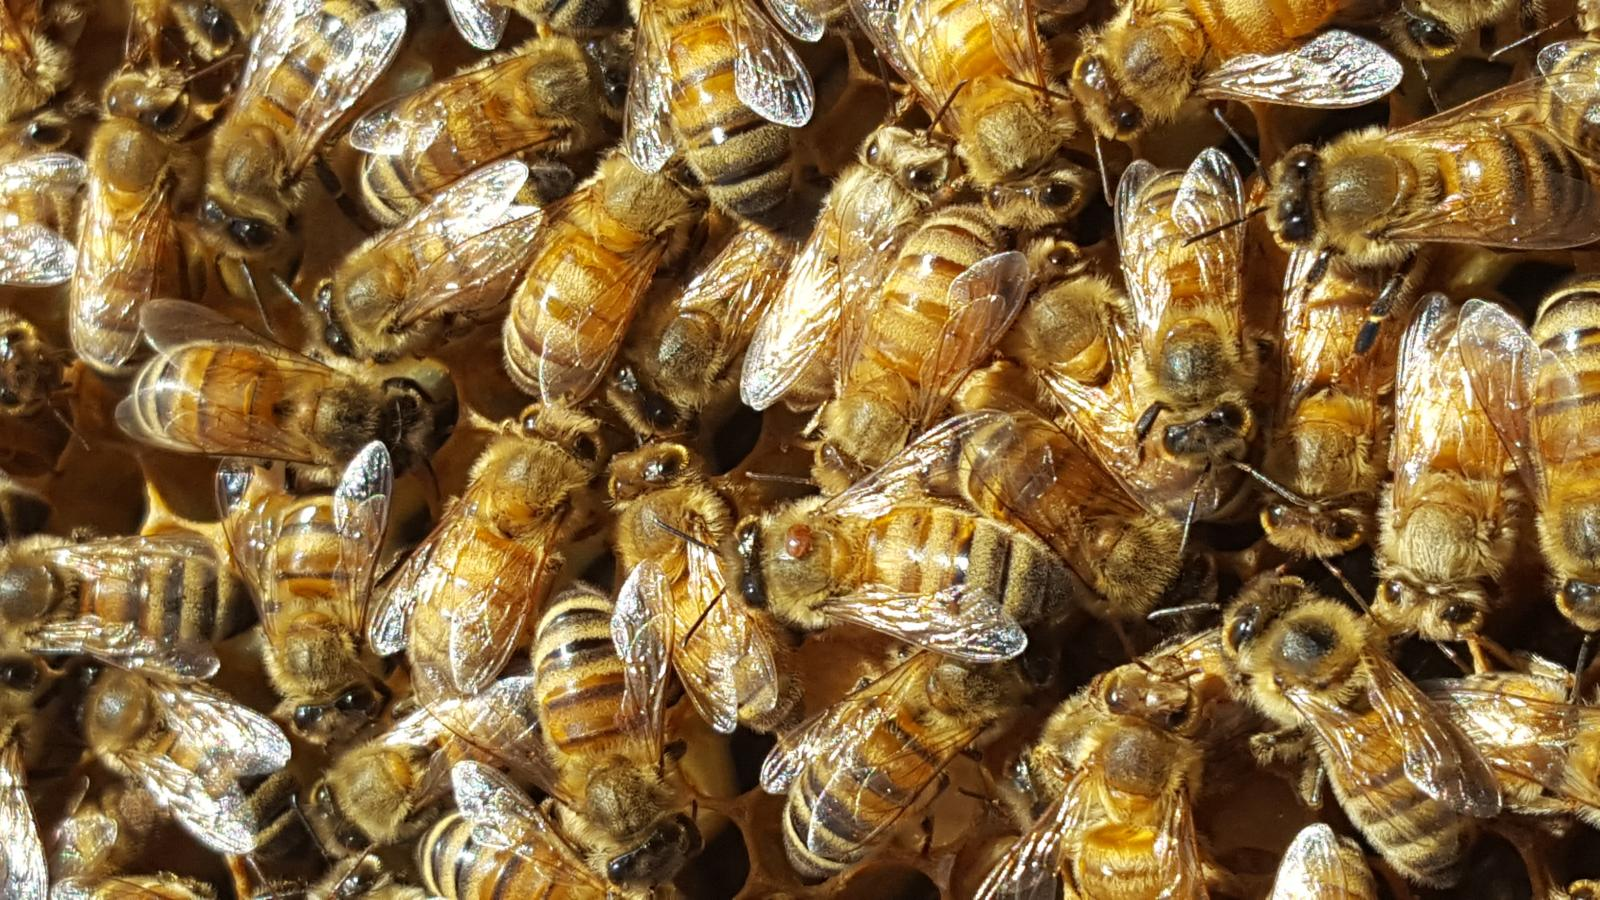 bees with varroa mite